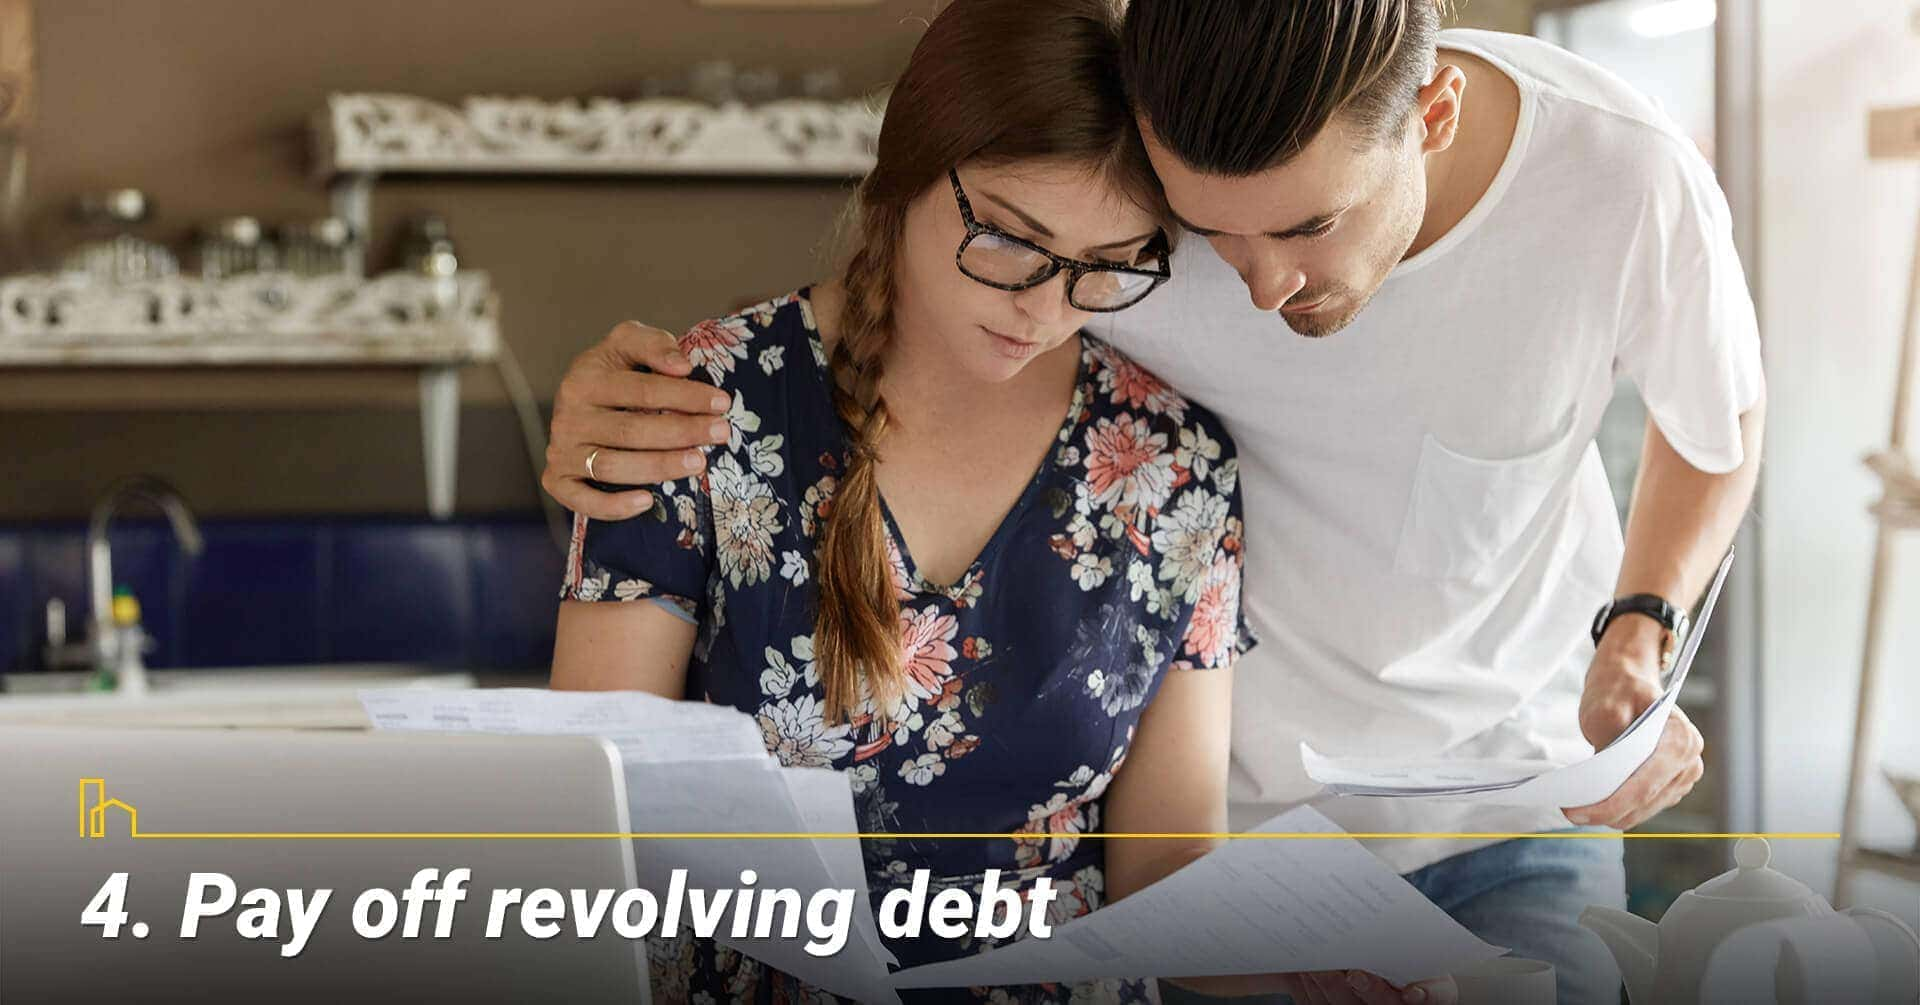 Pay off revolving debt, stay out of revolving debt